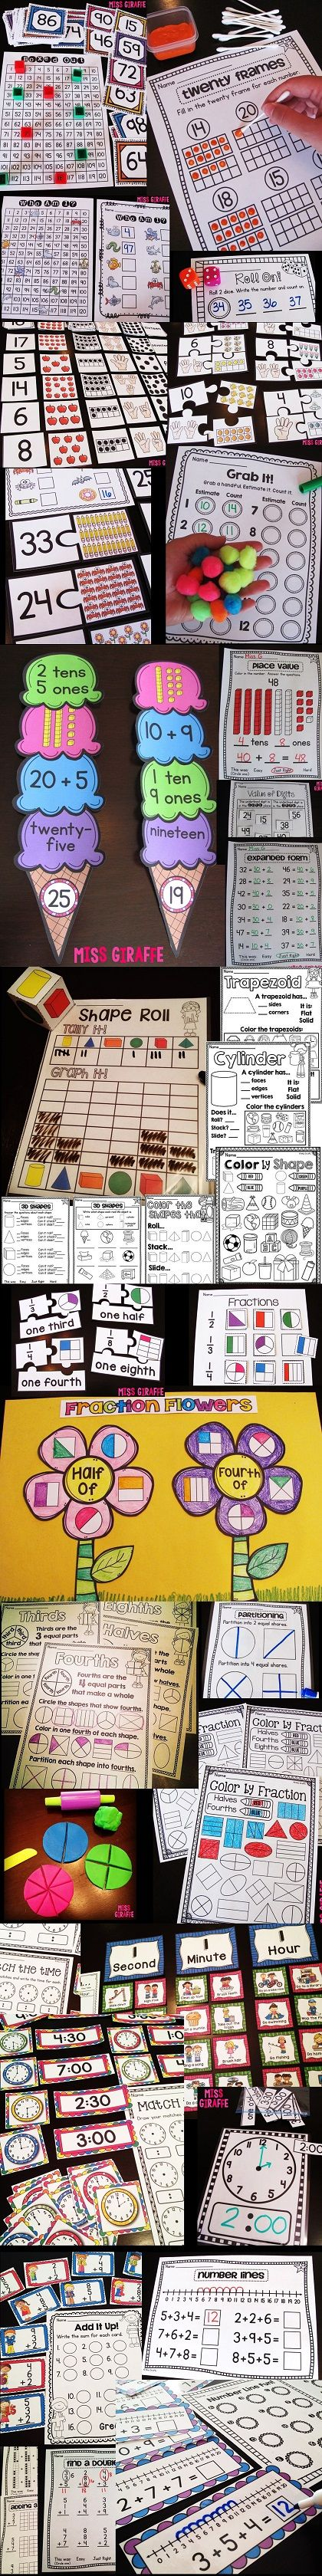 First grade math centers and worksheets and ideas FOR THE ENTIRE YEAR - must read this entire blog!!!! You can get all of these in a bundle to have math planned the whole year for 1st grade!